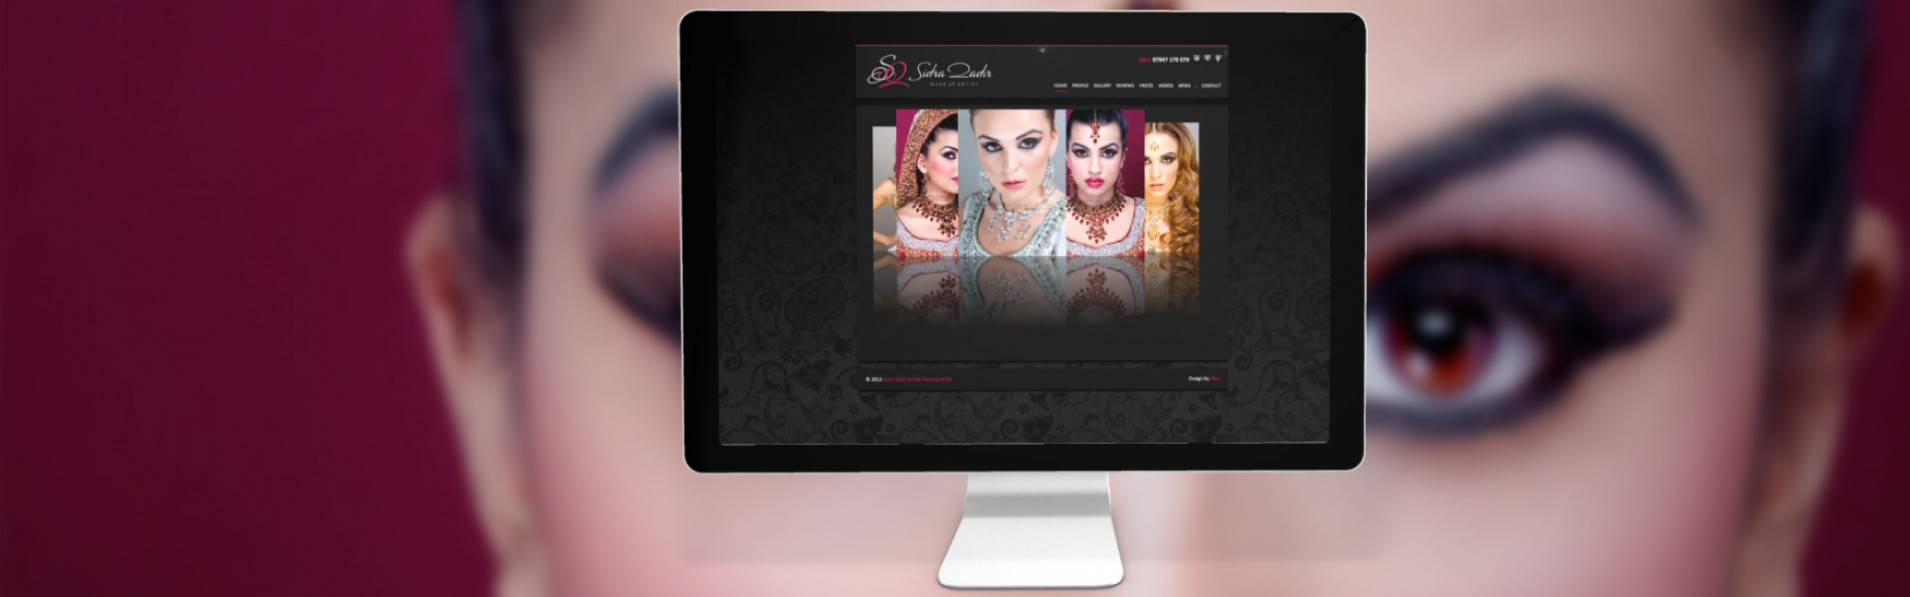 SQBM portfolio new1 - Website design for professional UK Makeup artist